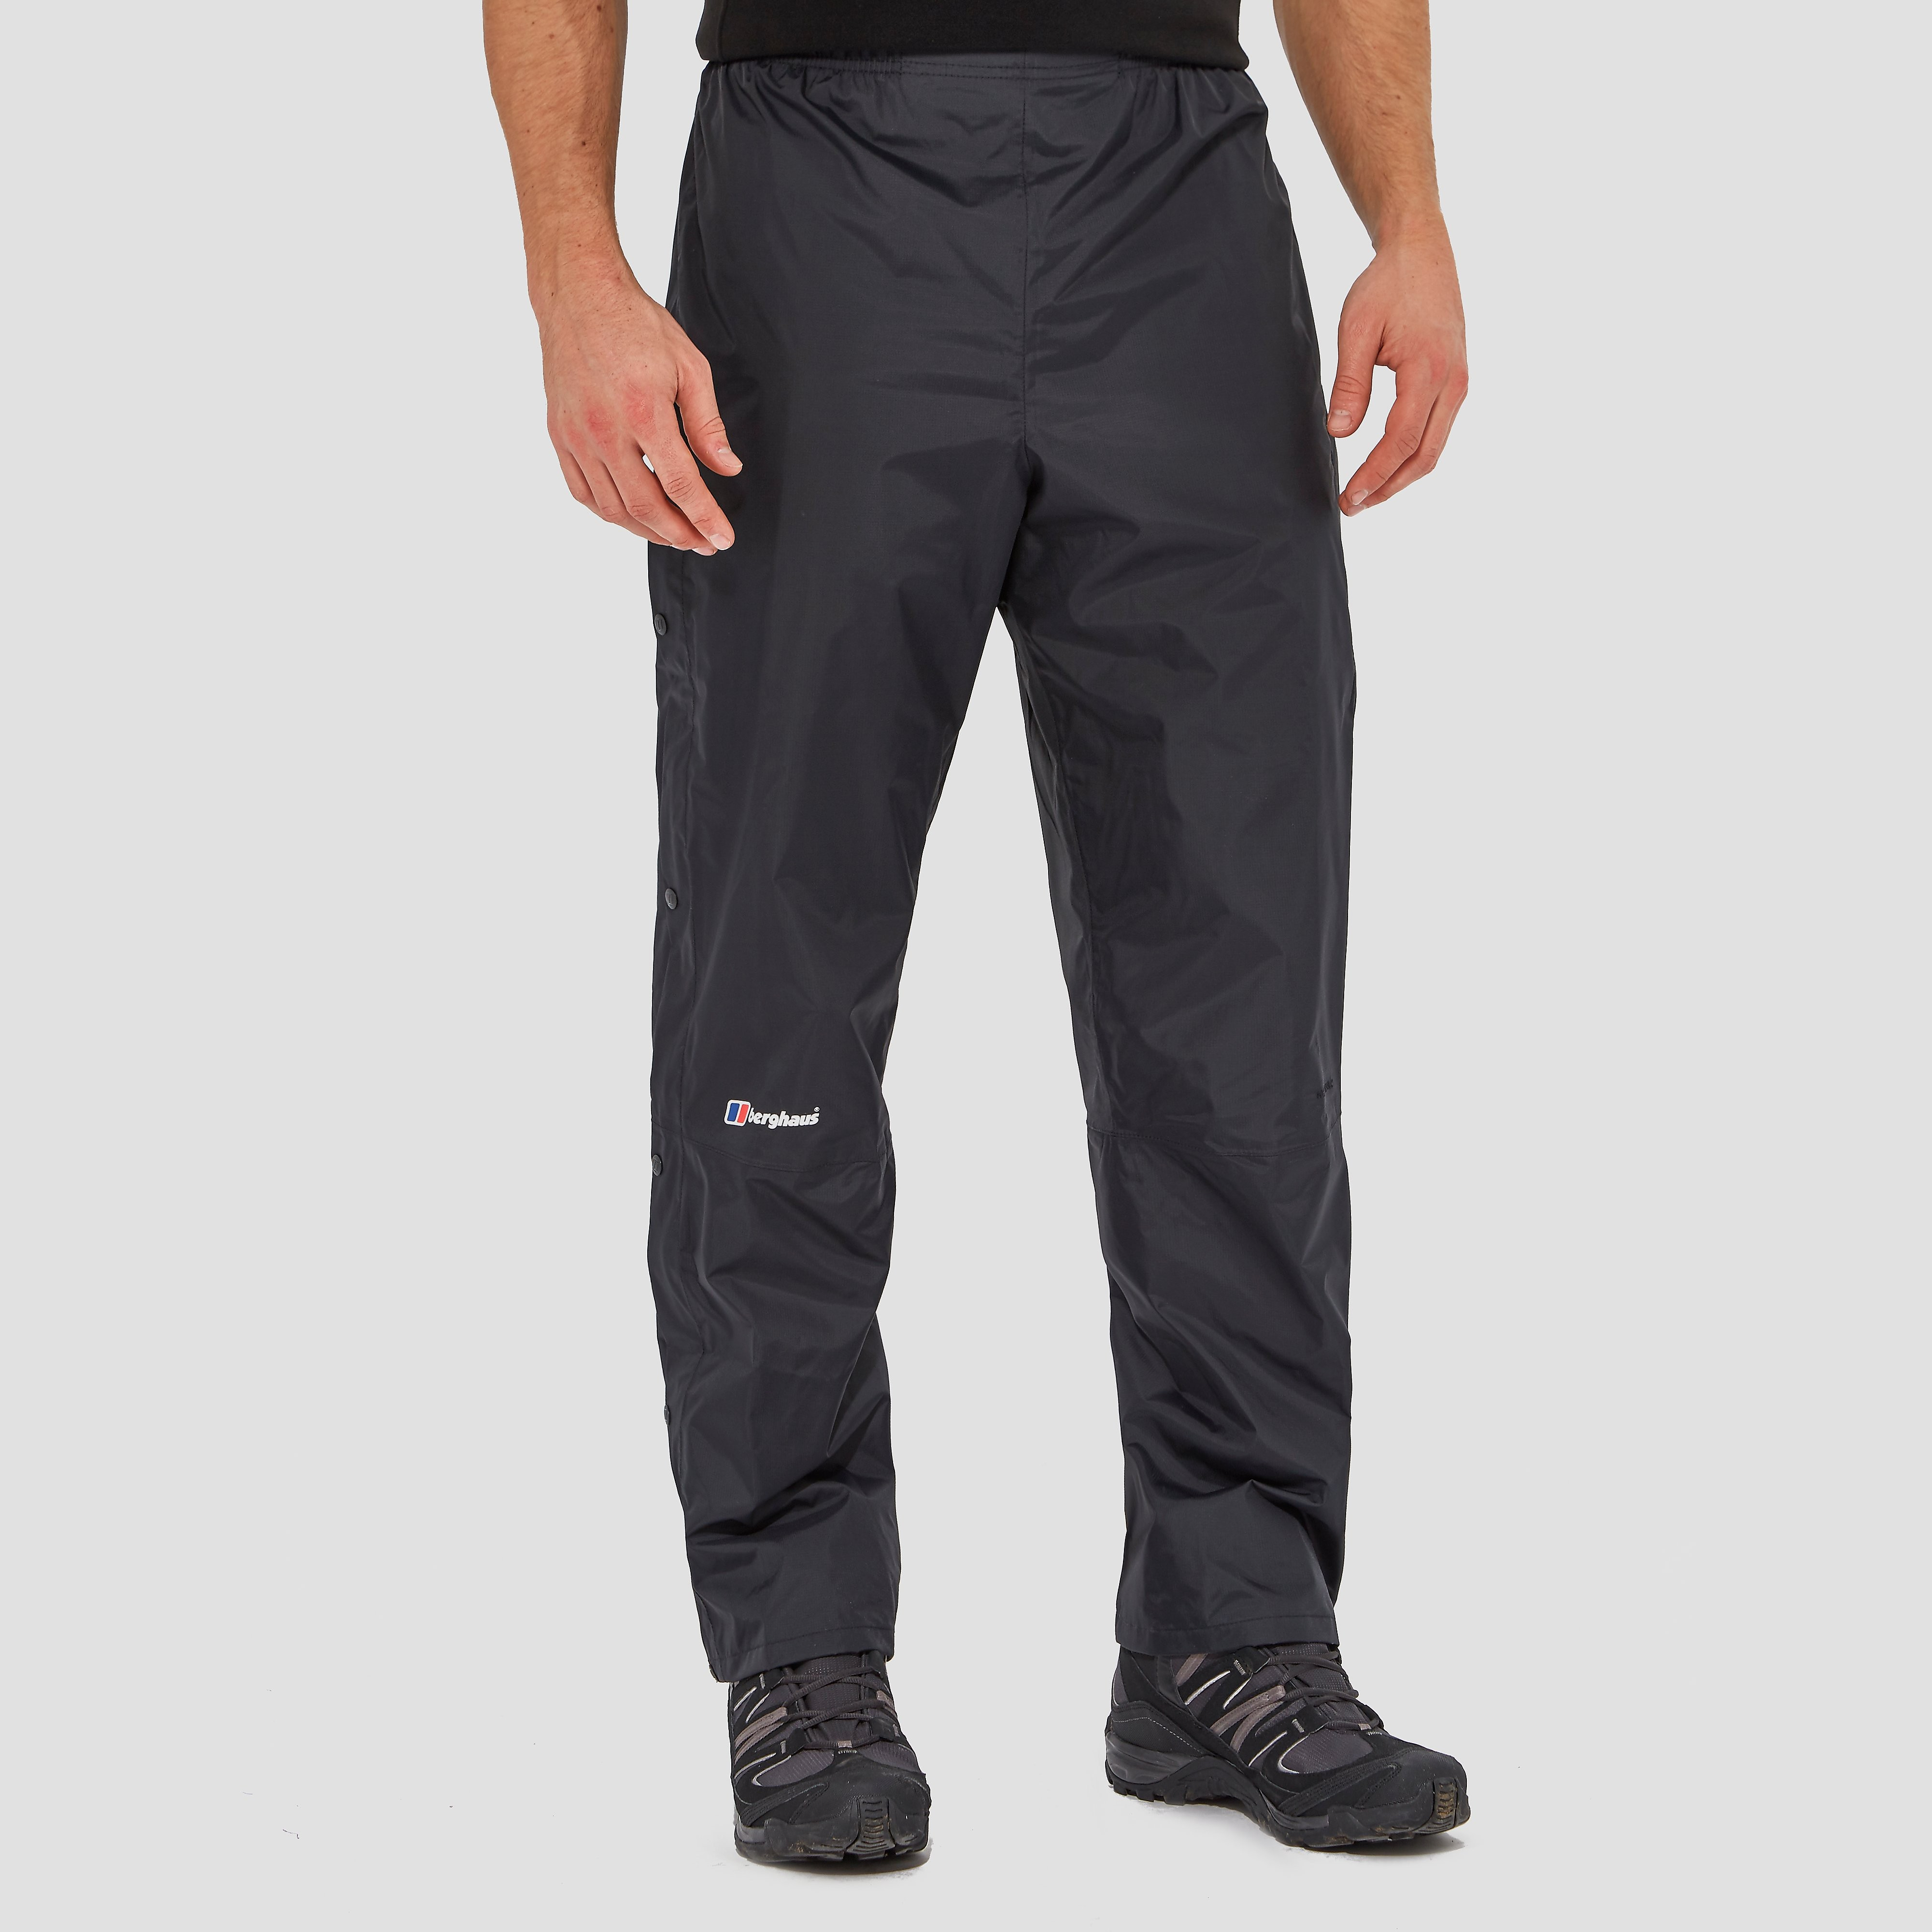 BERGHAUS Men's Deluge Pant (Regular Length)